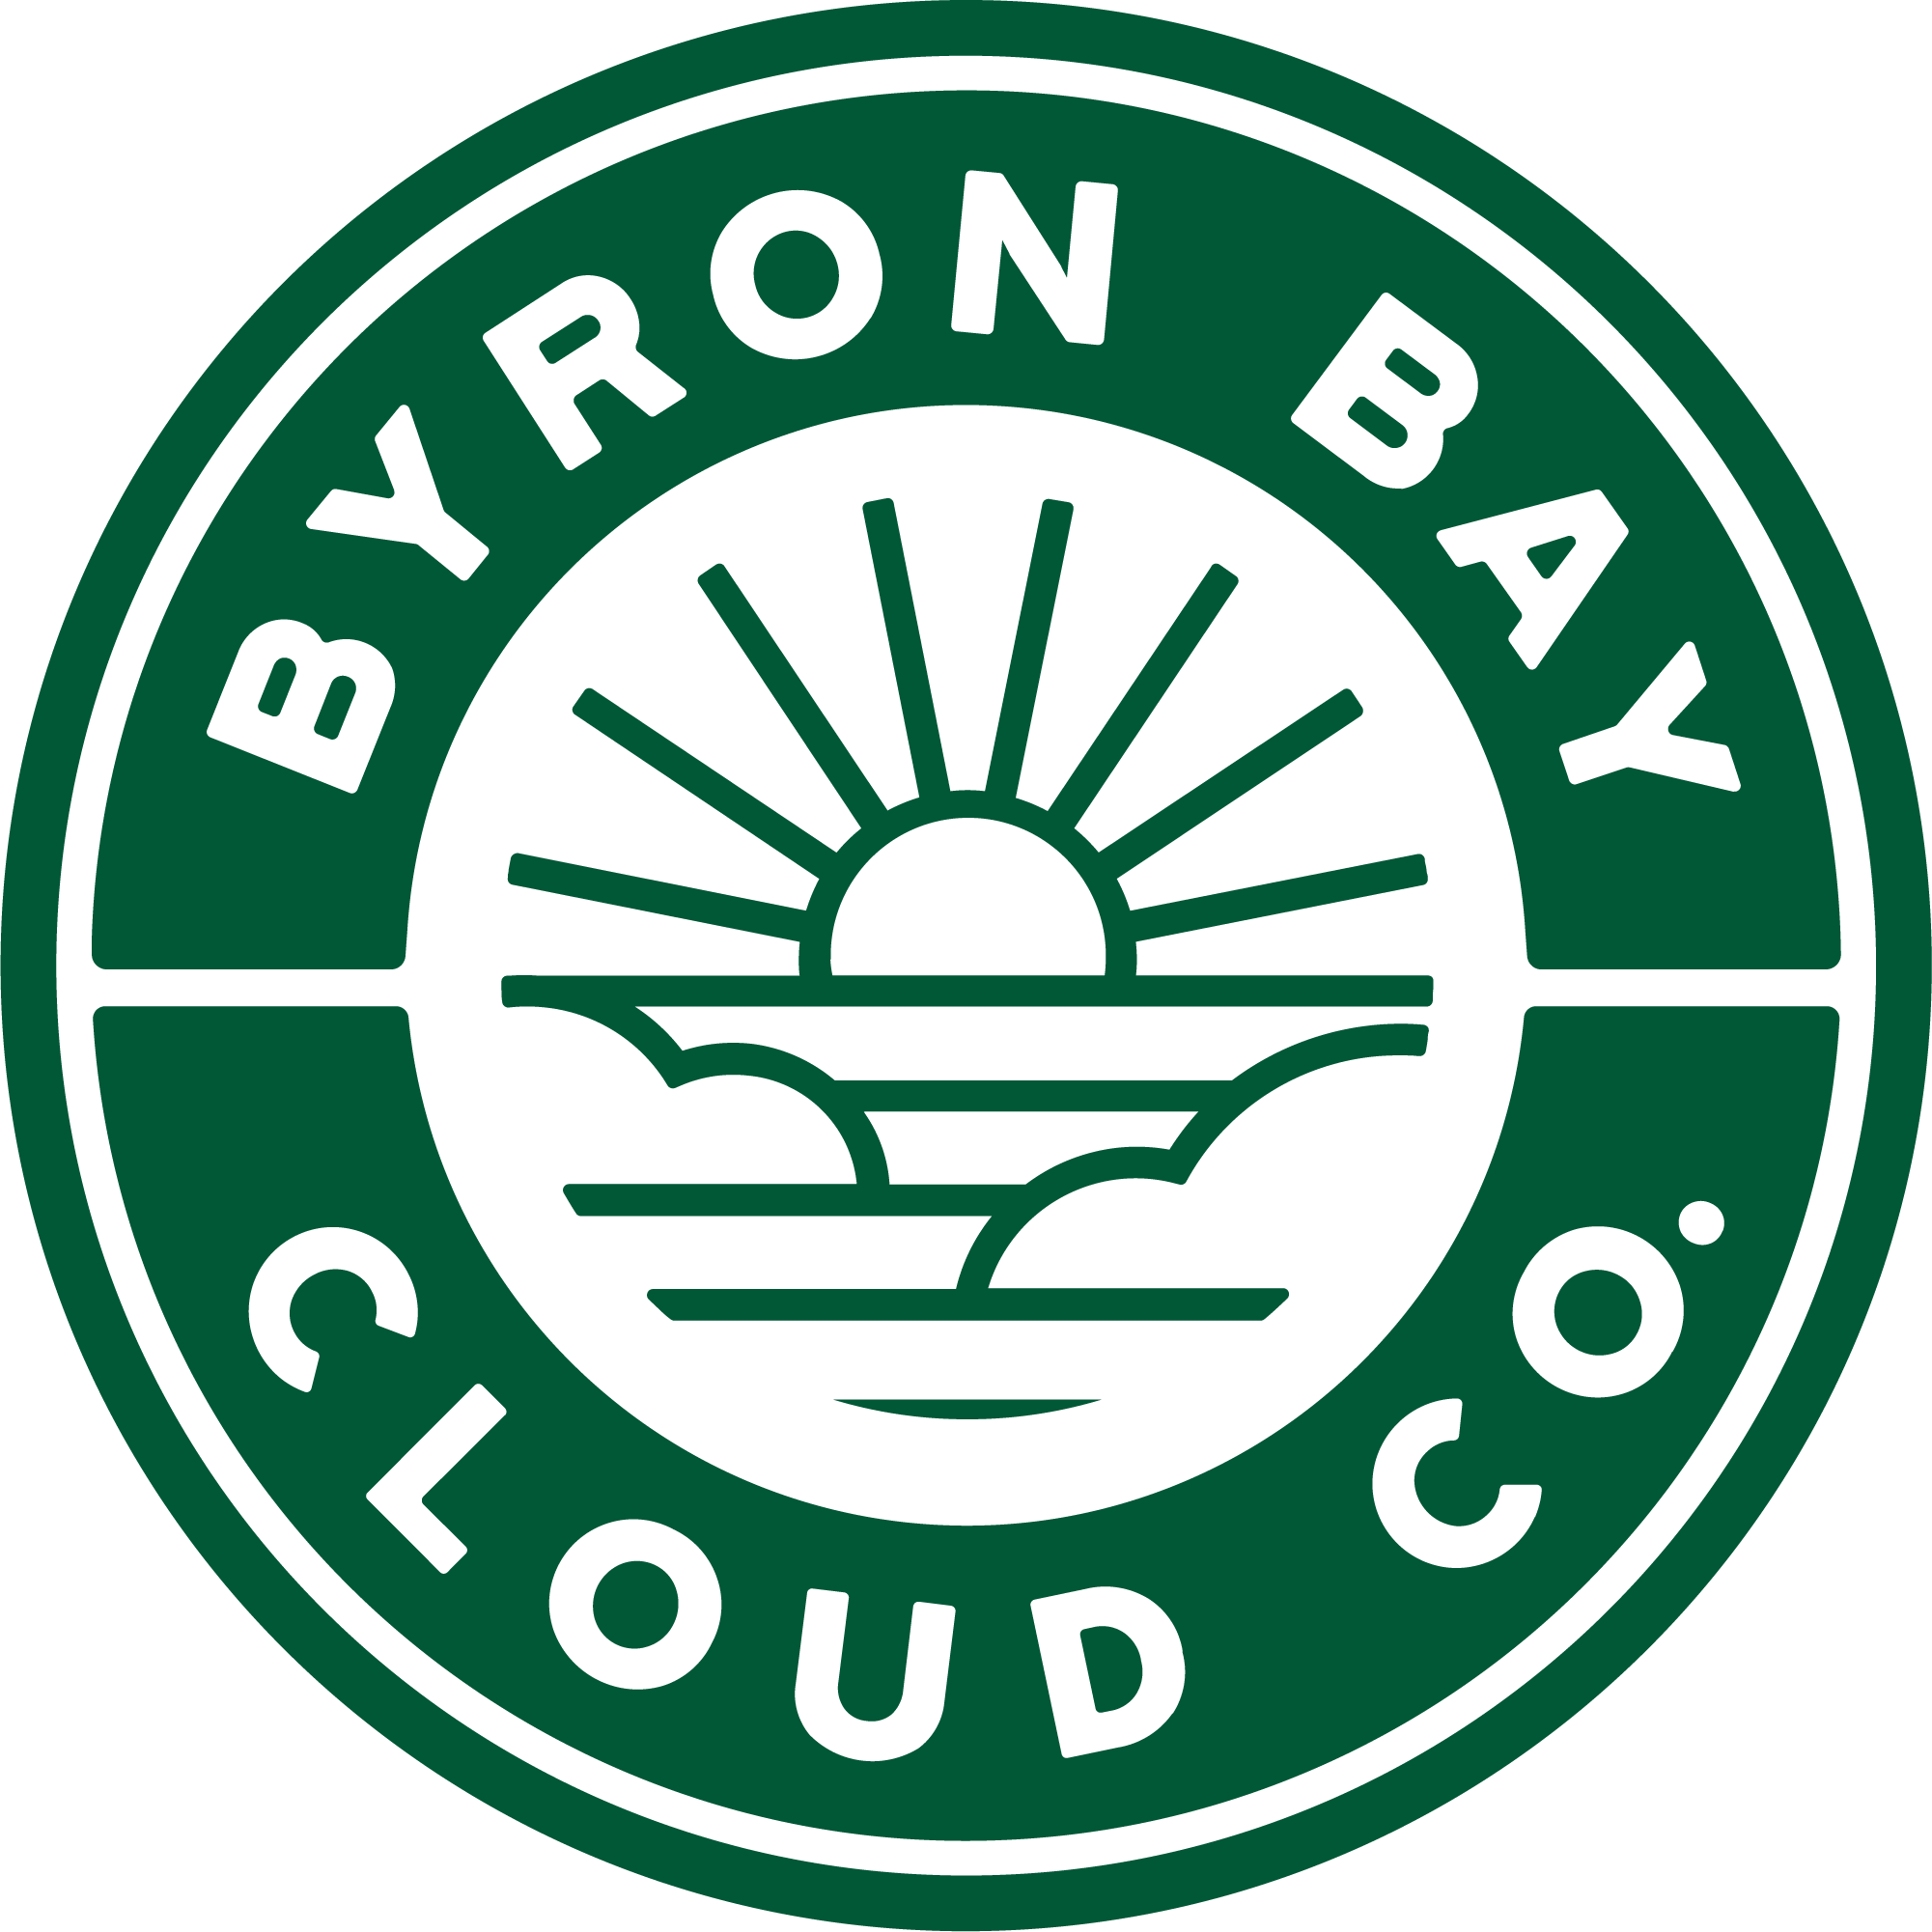 Byron Bay Cloud Co - Wholesale Now Available at Aussie Vape Labs